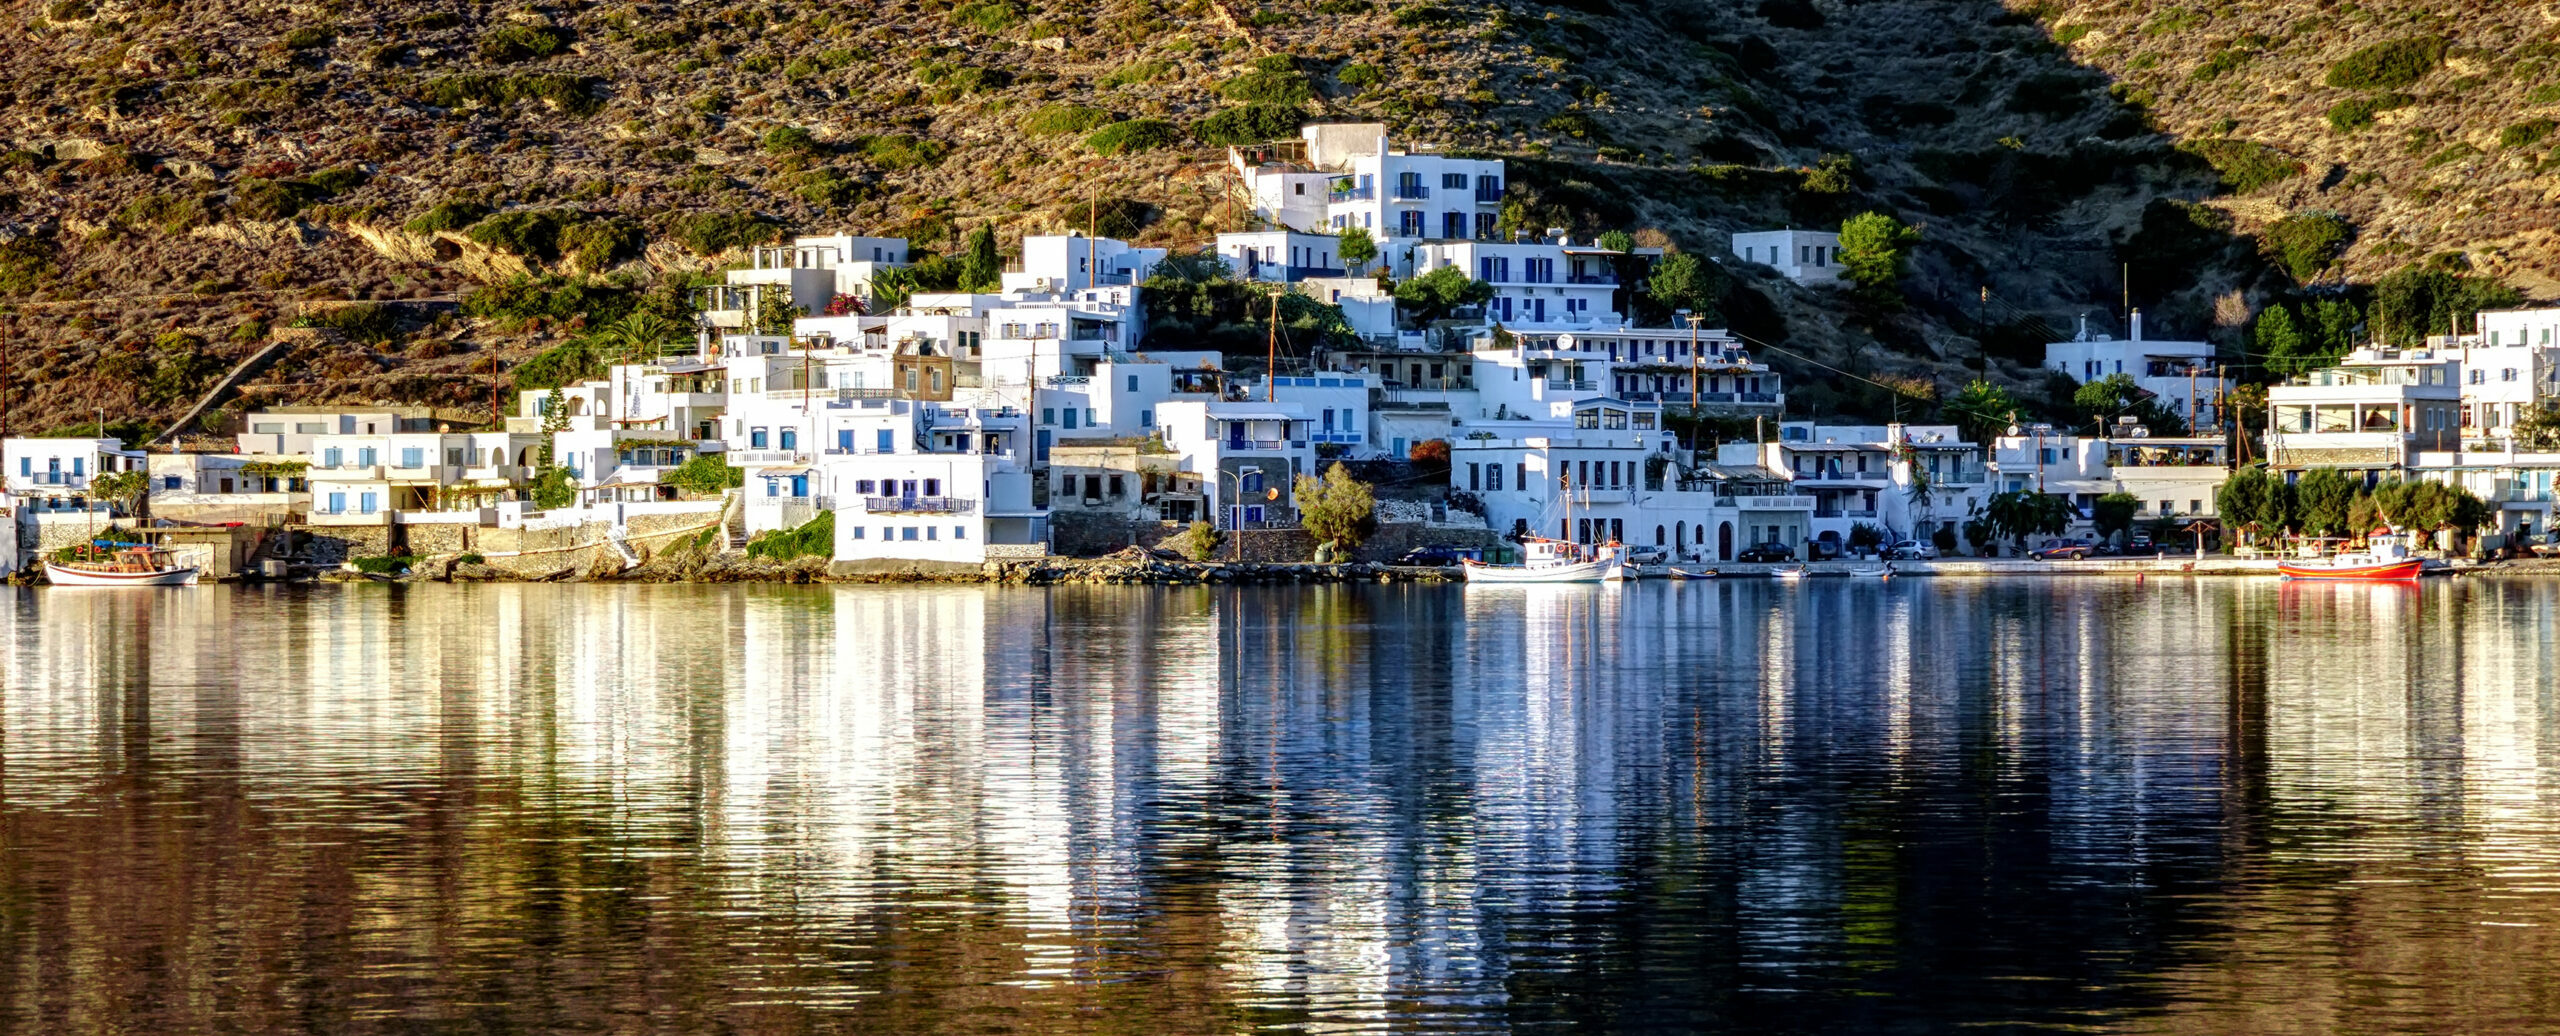 Patatato: The dish that convinces you that Amorgos knows about gastronomy